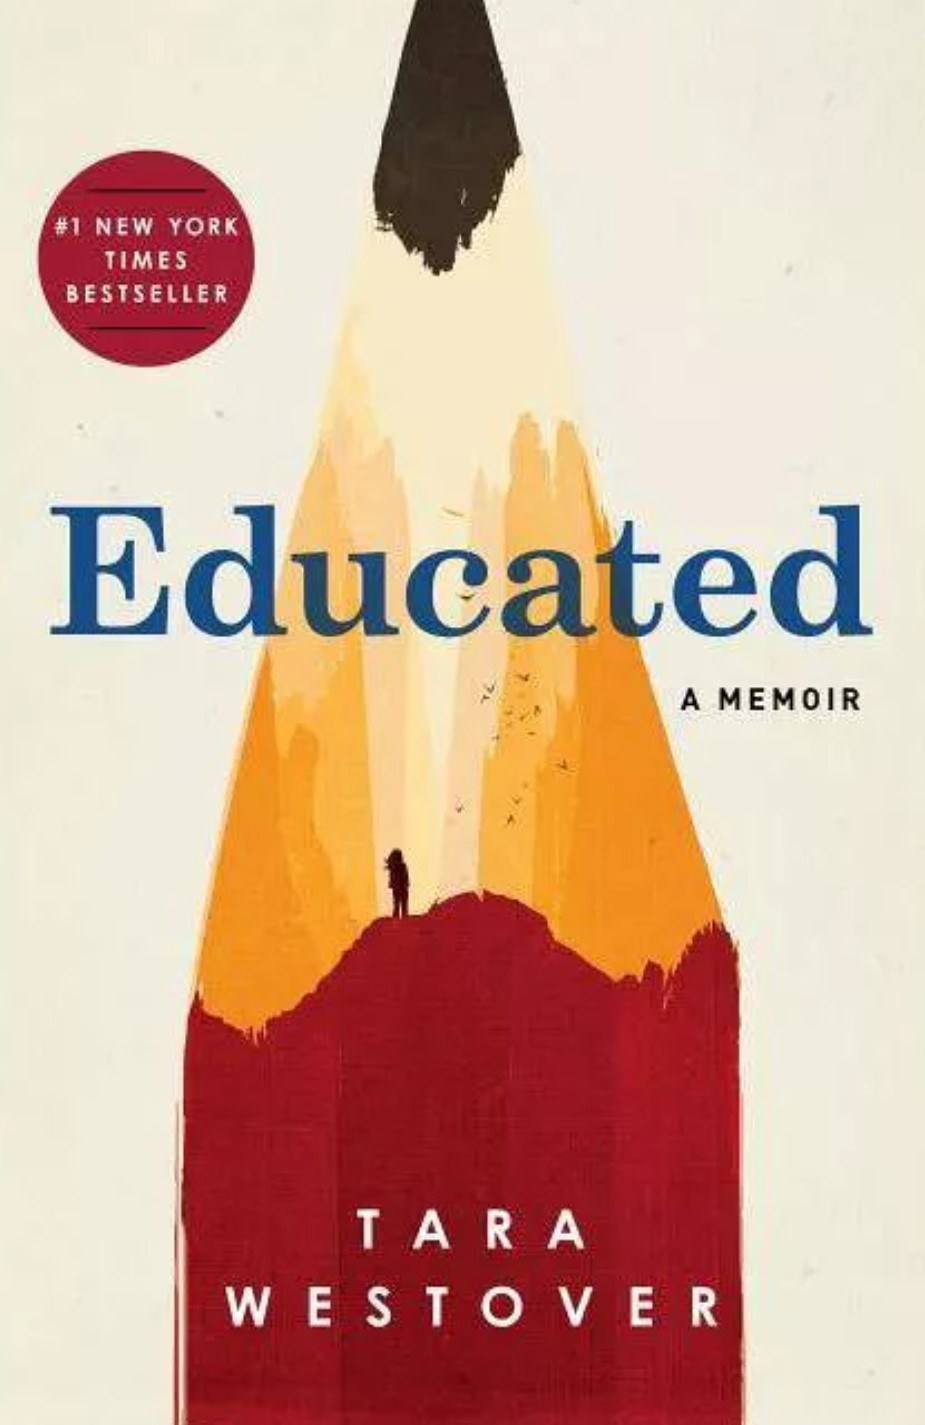 The cover of Educated by Tara Westover